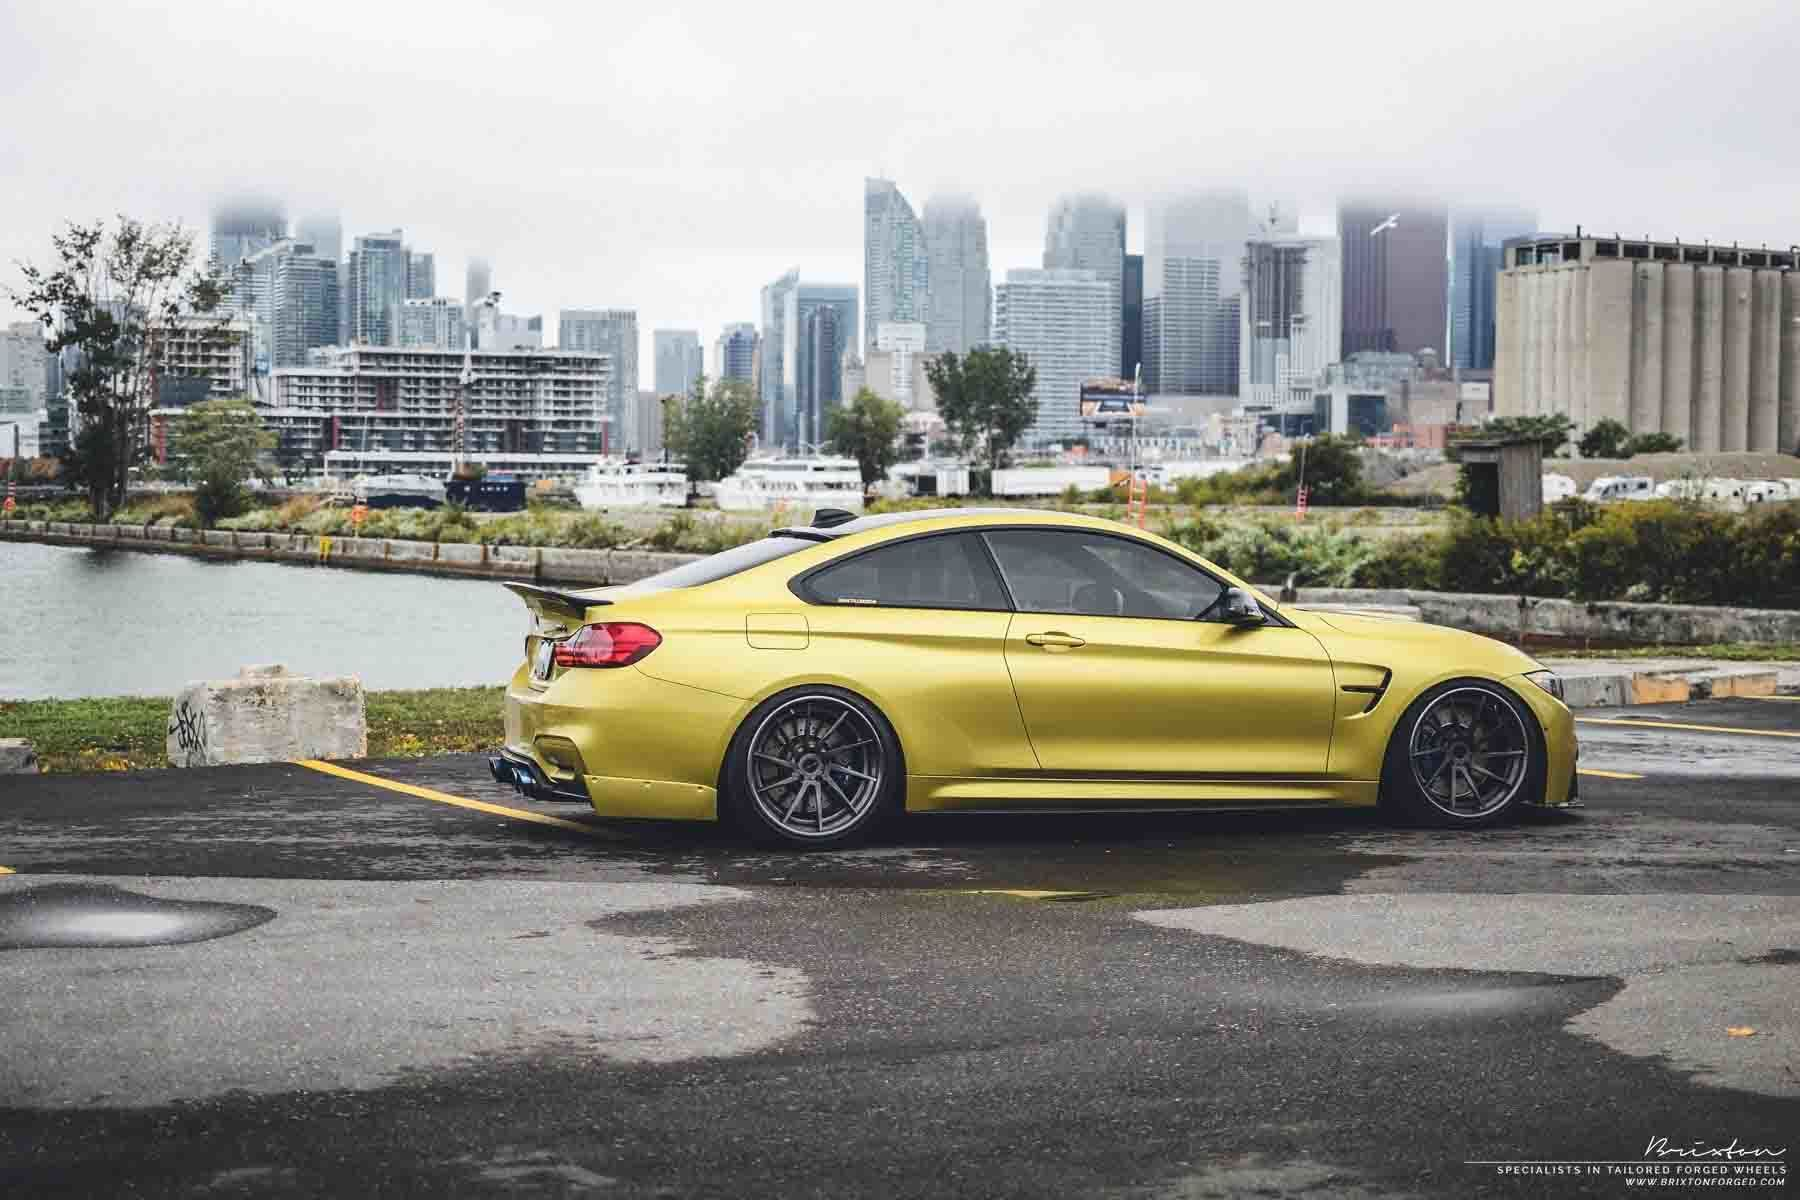 images-products-1-2806-232975094-brixton-forged-austin-yellow-bmw-m4-f82-brixton-forged-r10d-targa-series-3-piece-concave-forged-.jpg